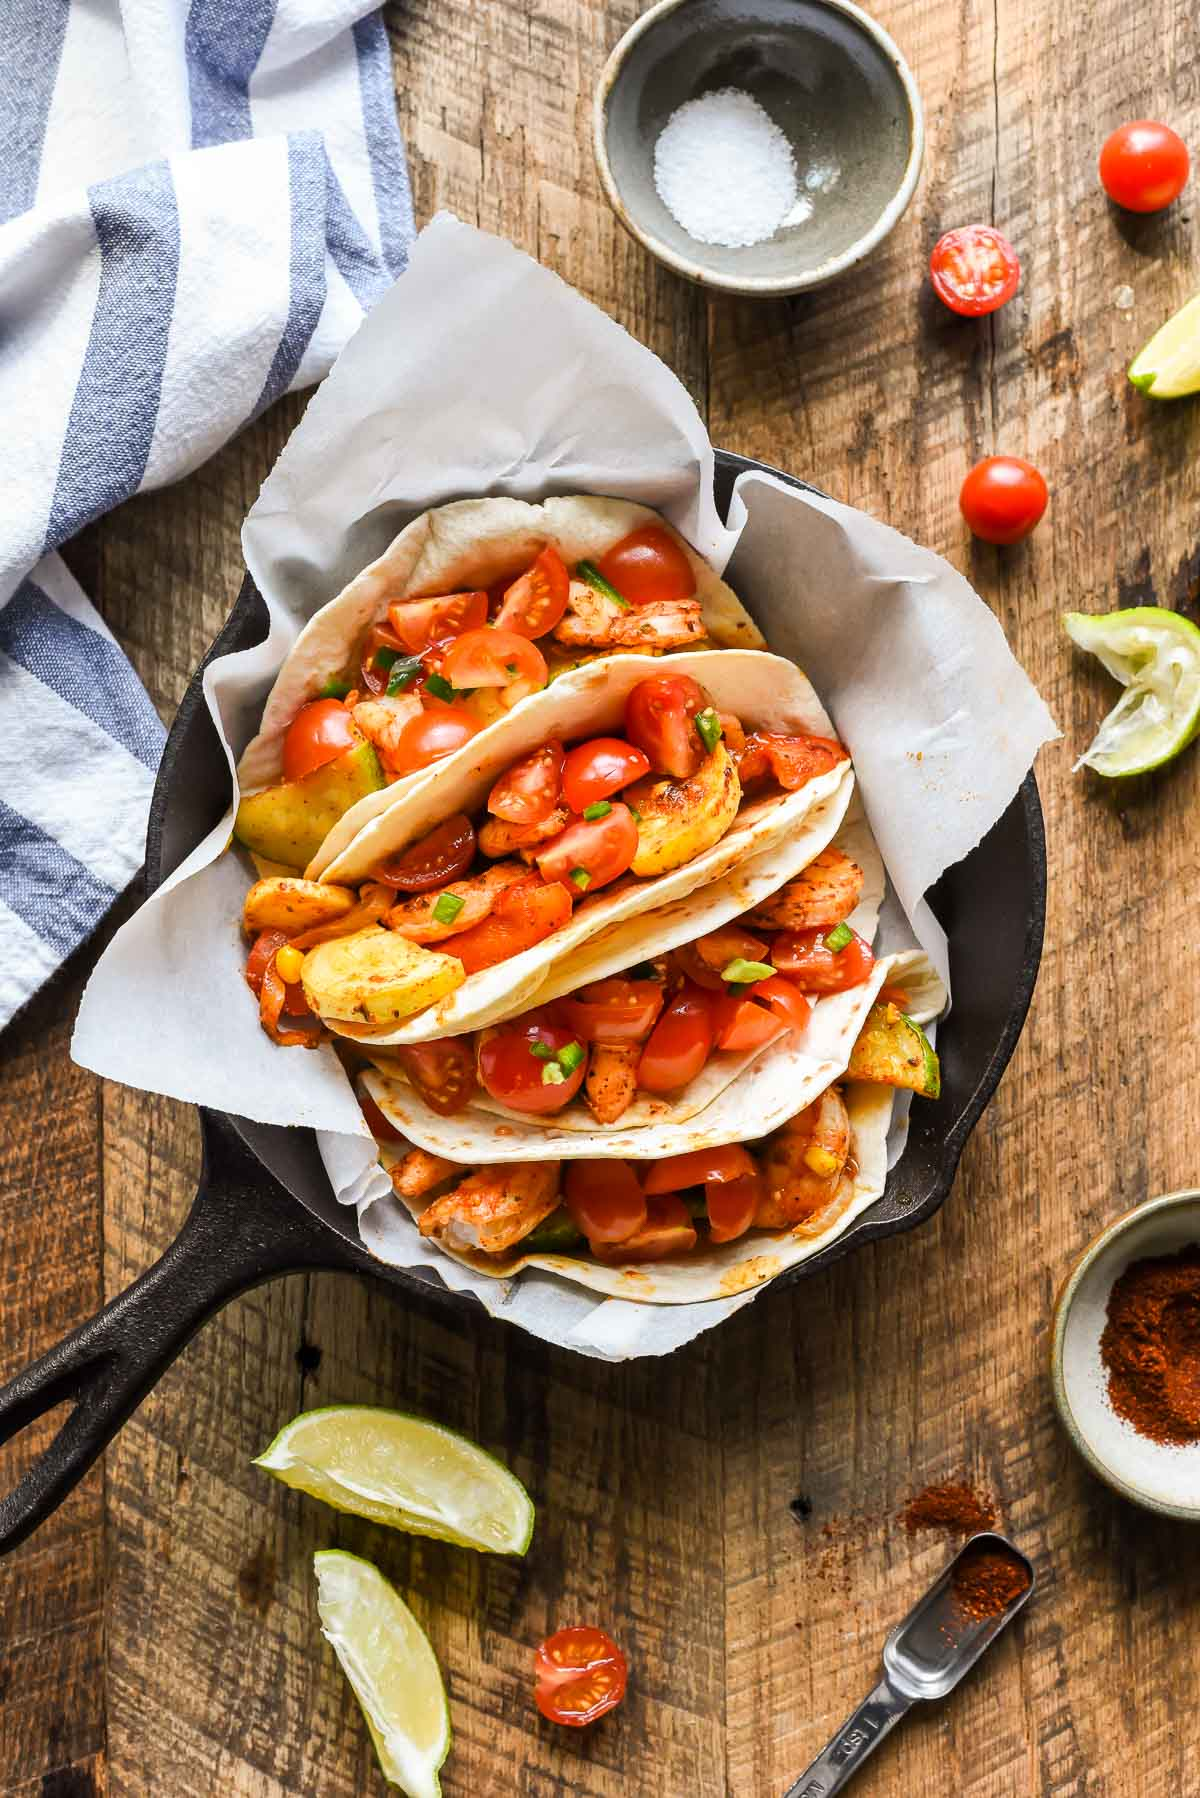 These Sheet Pan Shrimp Tacos loaded with summer veggies are a great 30 minute meal.